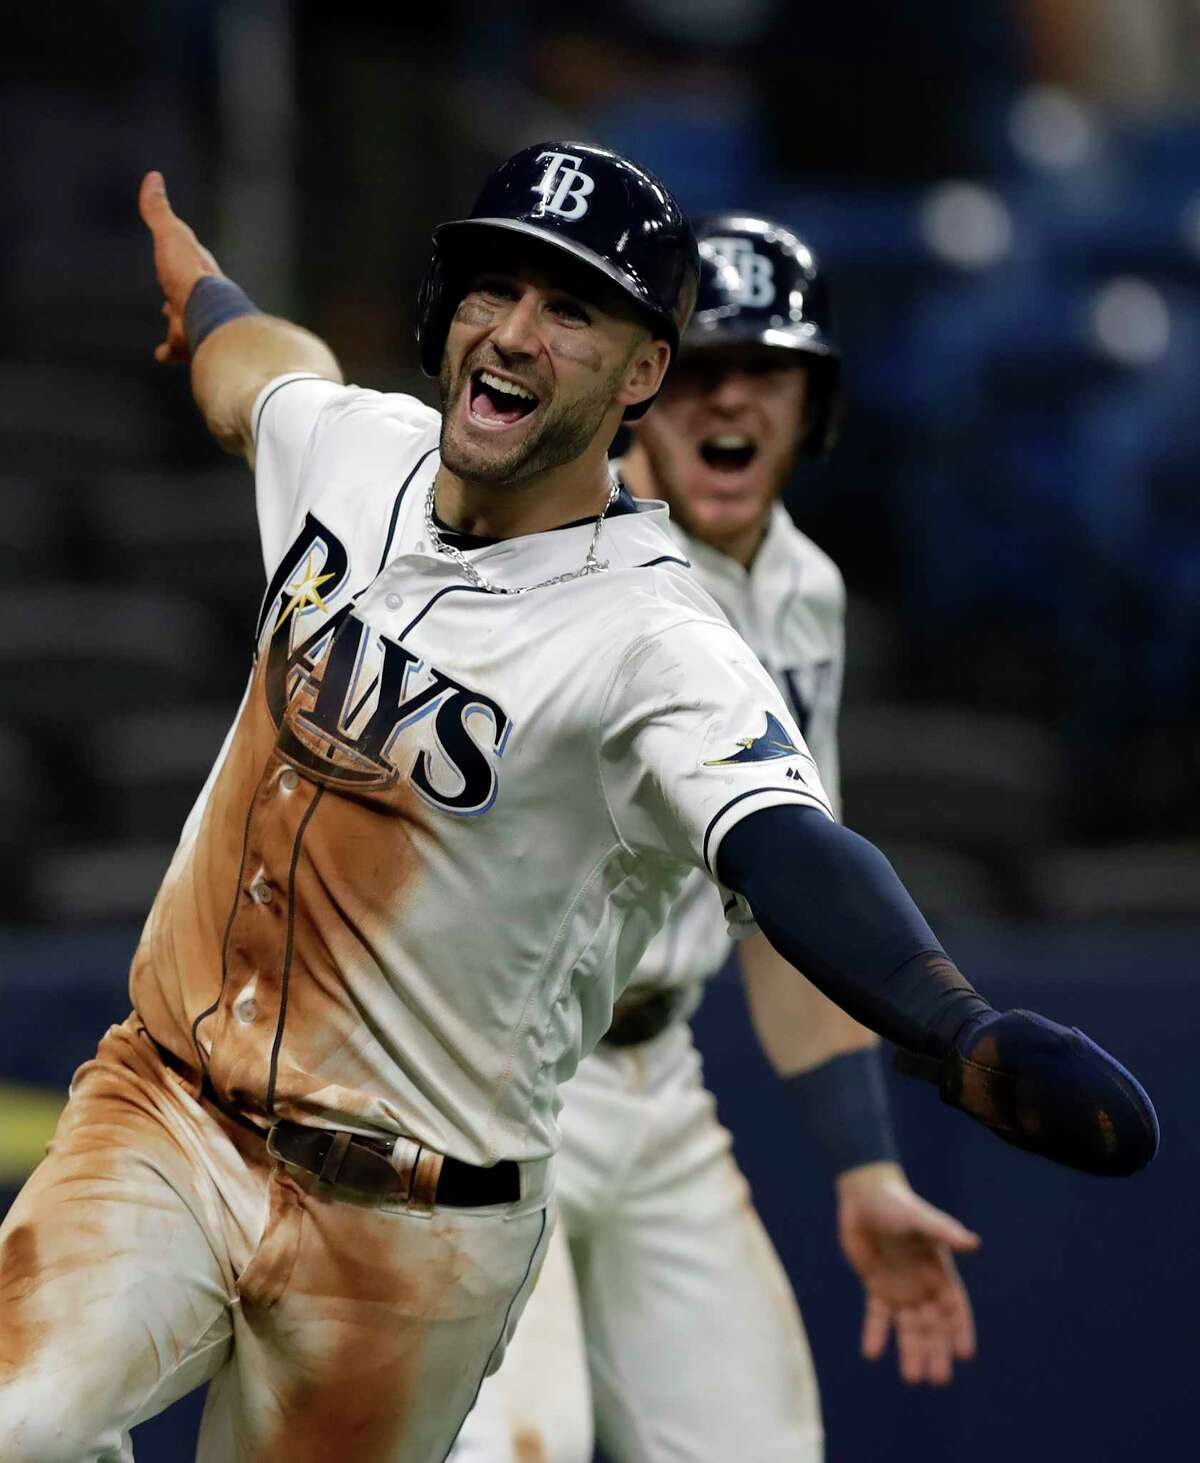 Tampa Bay Rays' Kevin Kiermaier celebrates after scoring the winning run on a wild pitch by Toronto Blue Jays reliever Buddy Boshers during the 10th inning of a baseball game Tuesday, Aug. 6, 2019, in St. Petersburg, Fla. (AP Photo/Chris O'Meara)